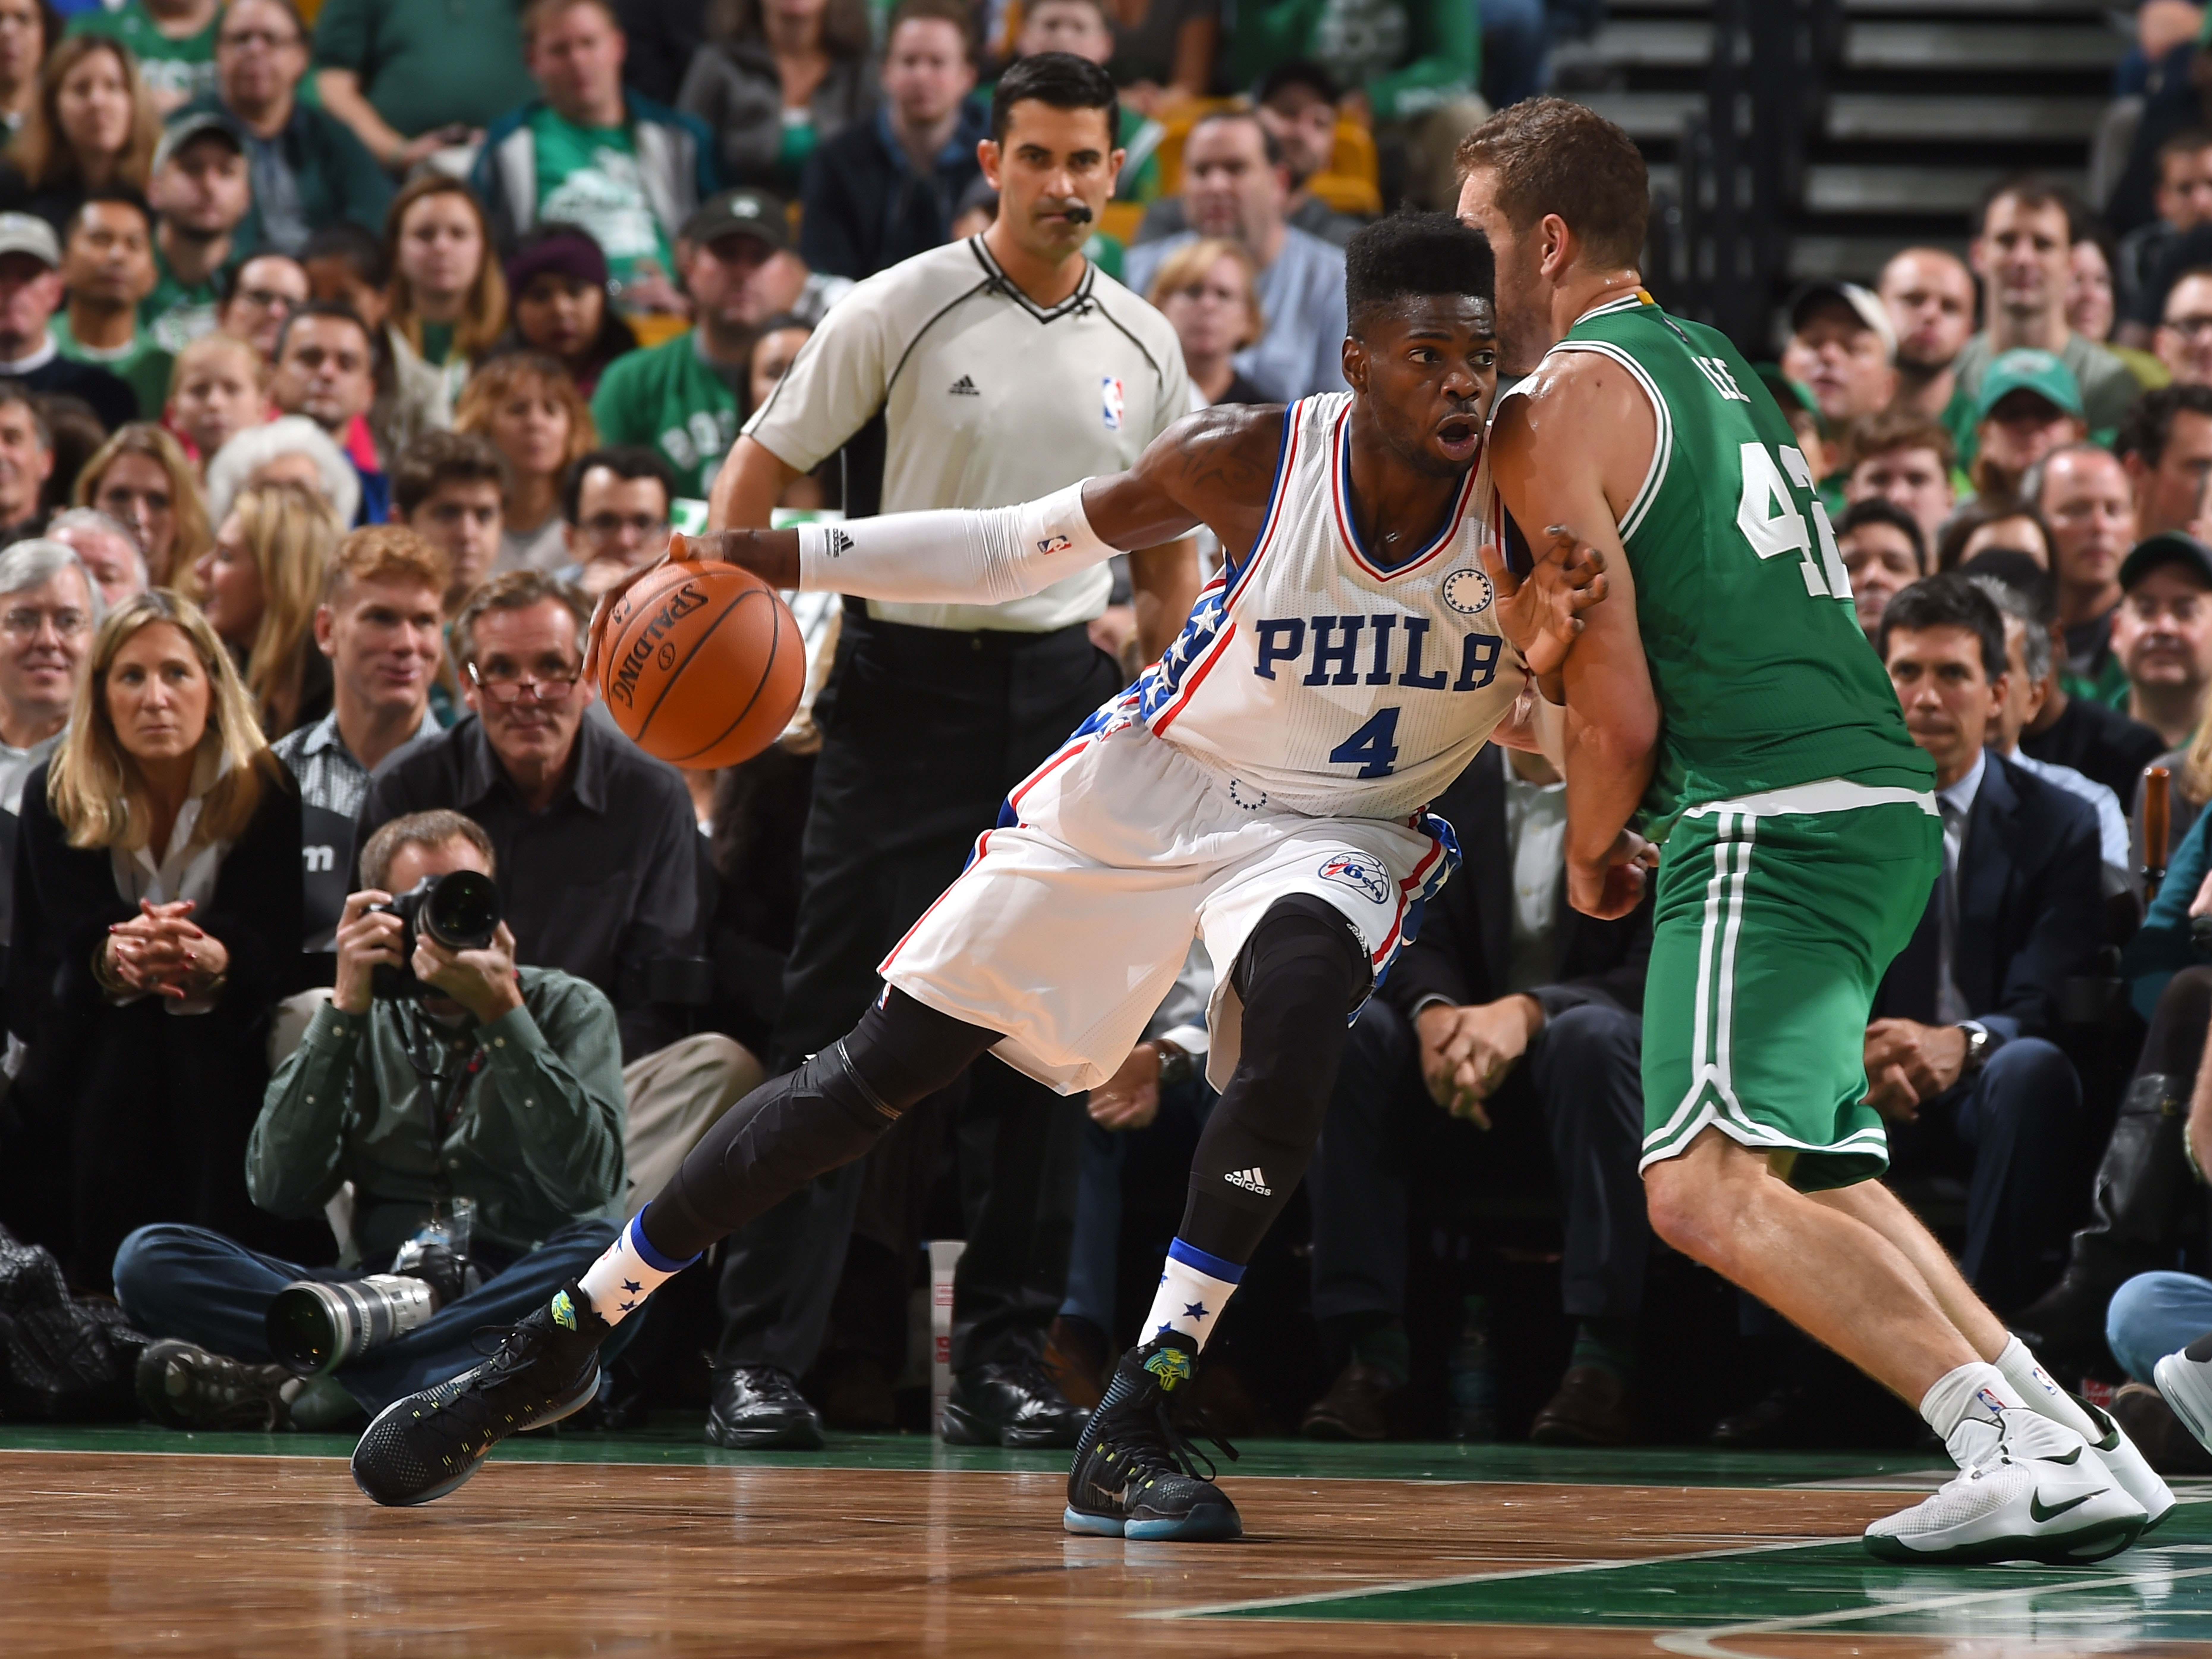 Philadelphia 76ers vs Boston Celtics